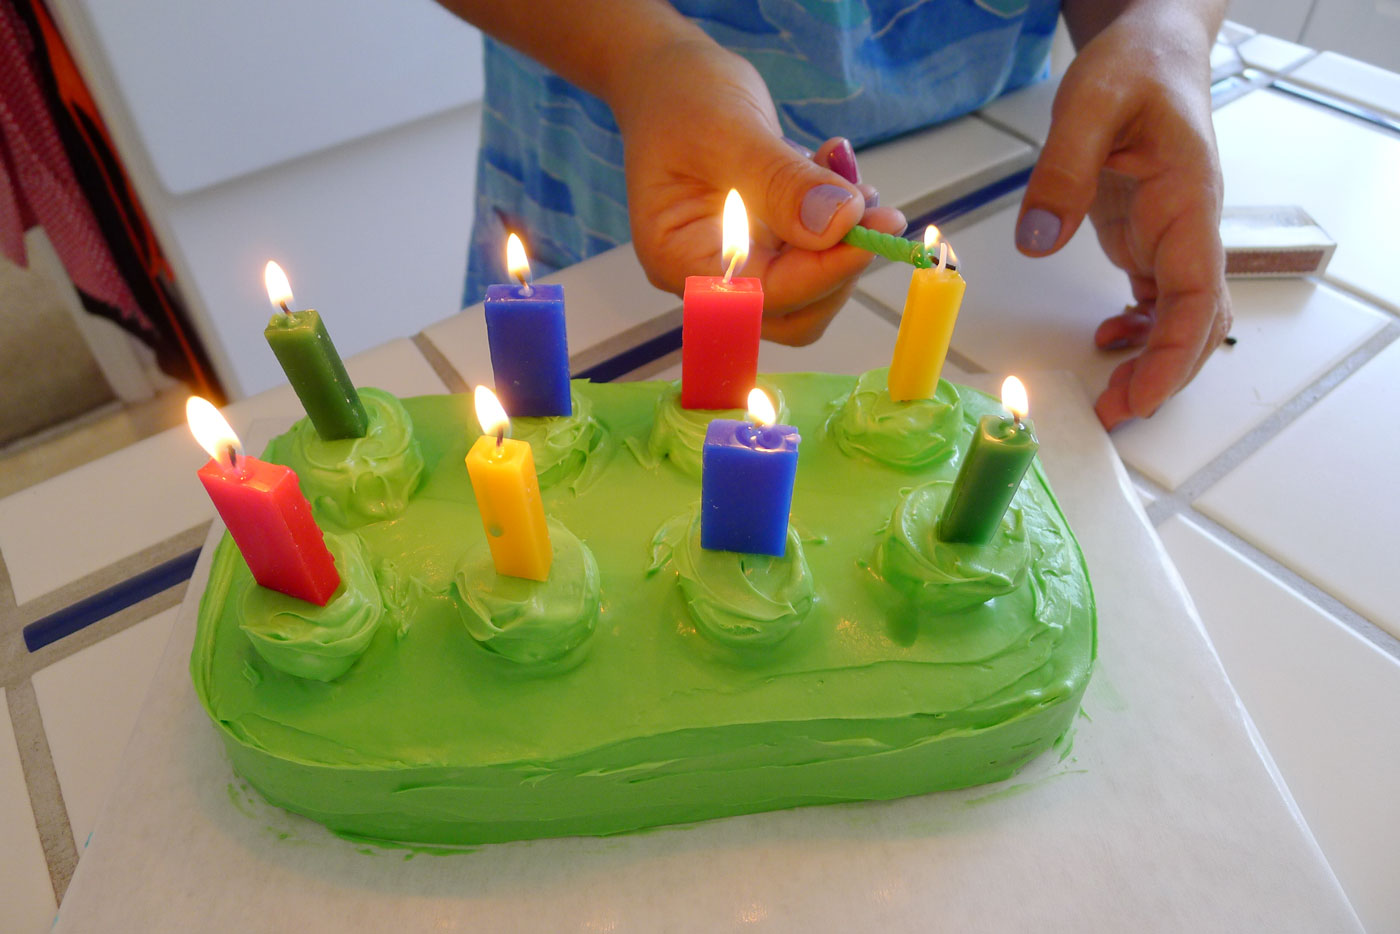 LEGO Candles Are Added To Cake The Lit